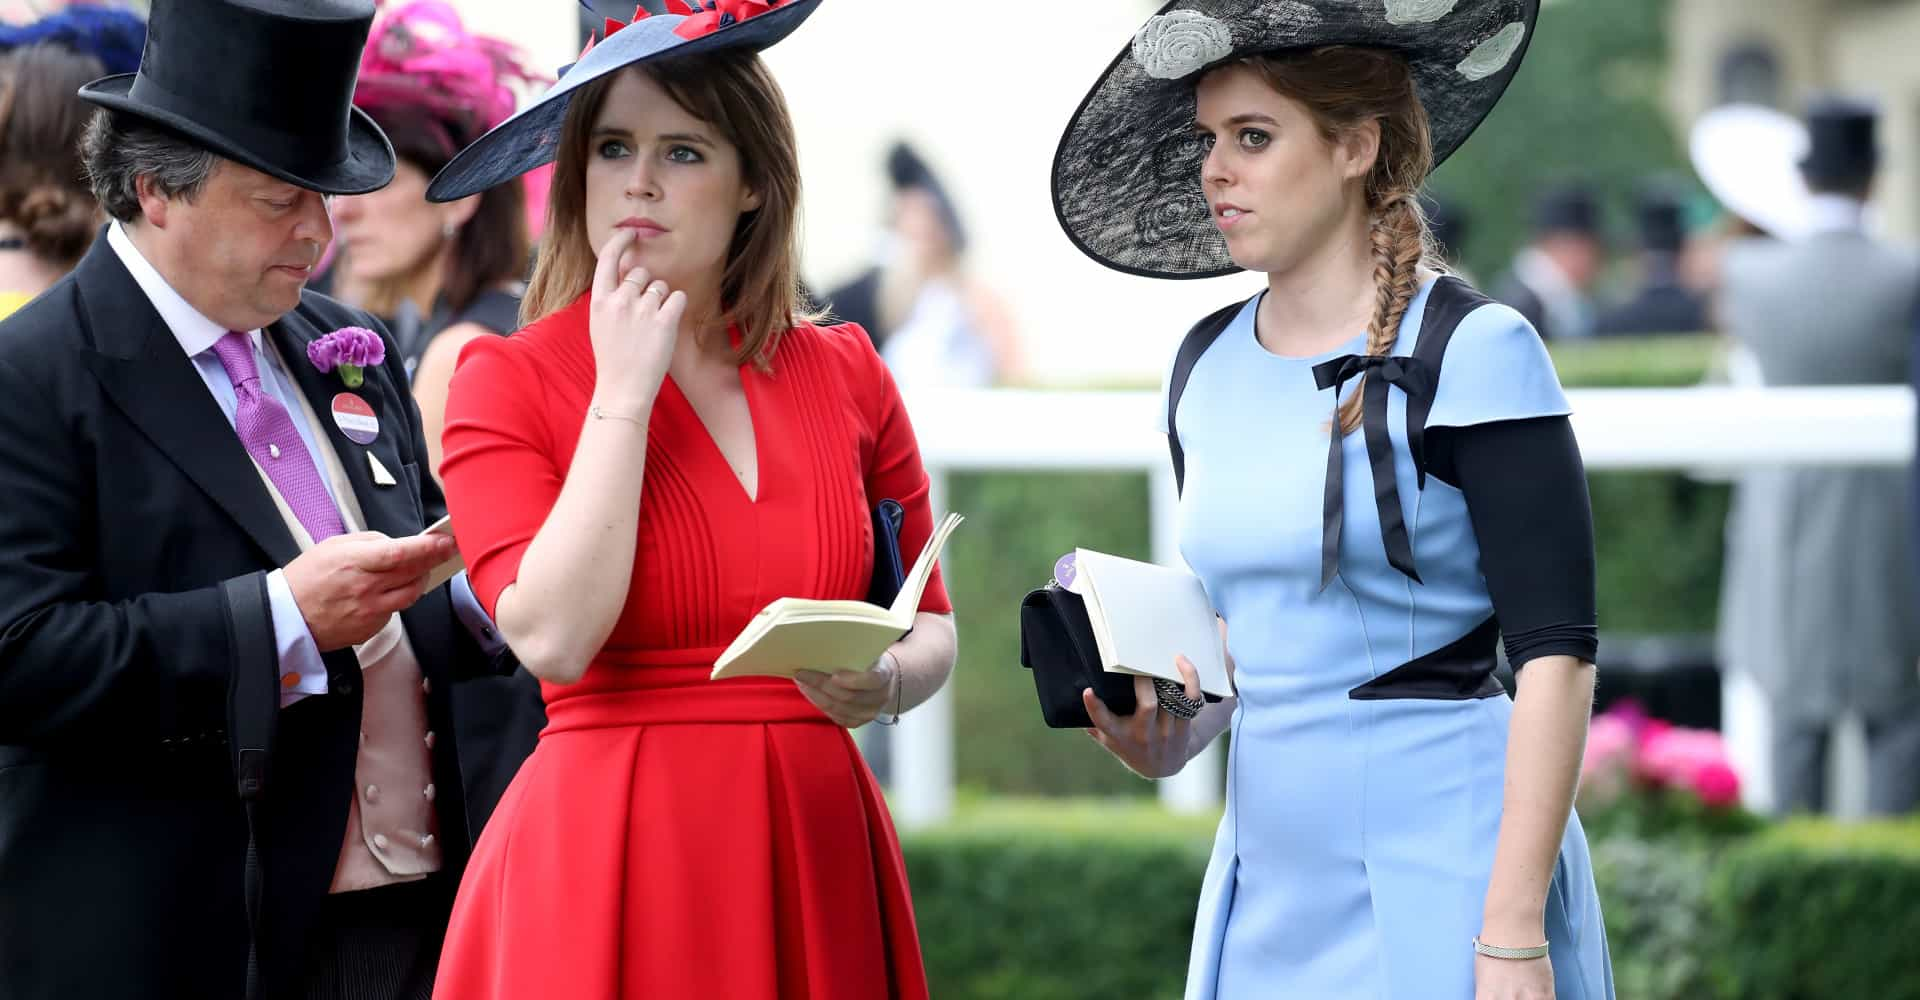 Everyone is pronouncing Princess Eugenie's name wrong